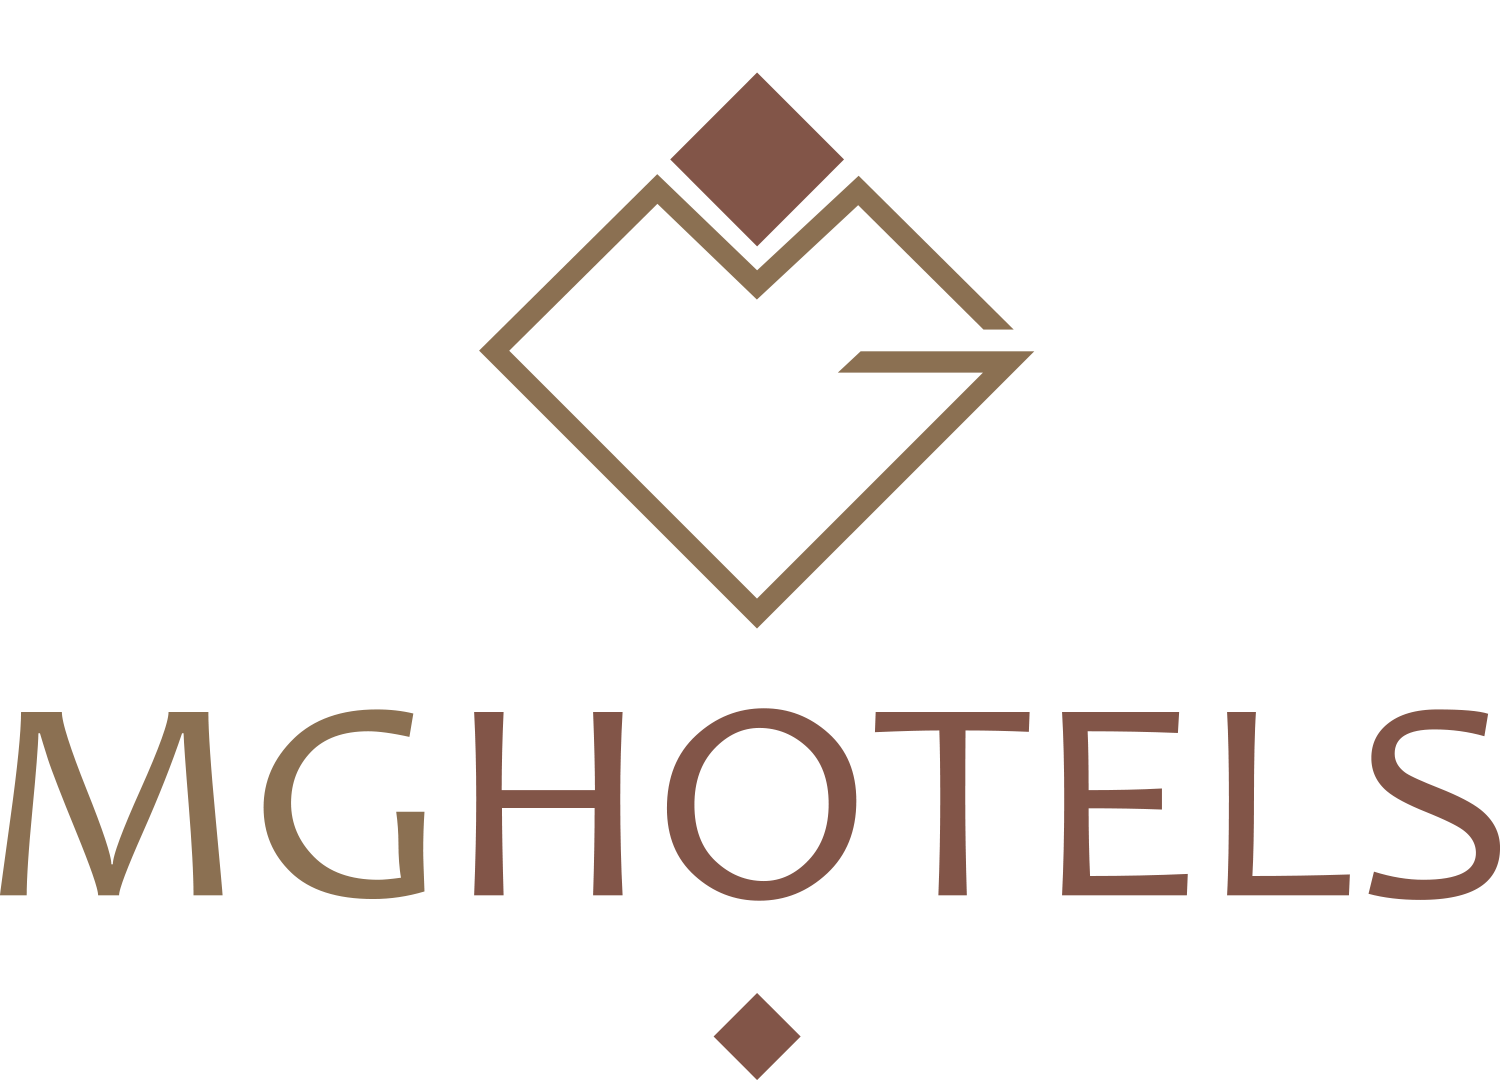 MG Hotels  new Sponsor  @ AB Contern  - Thanks for your support